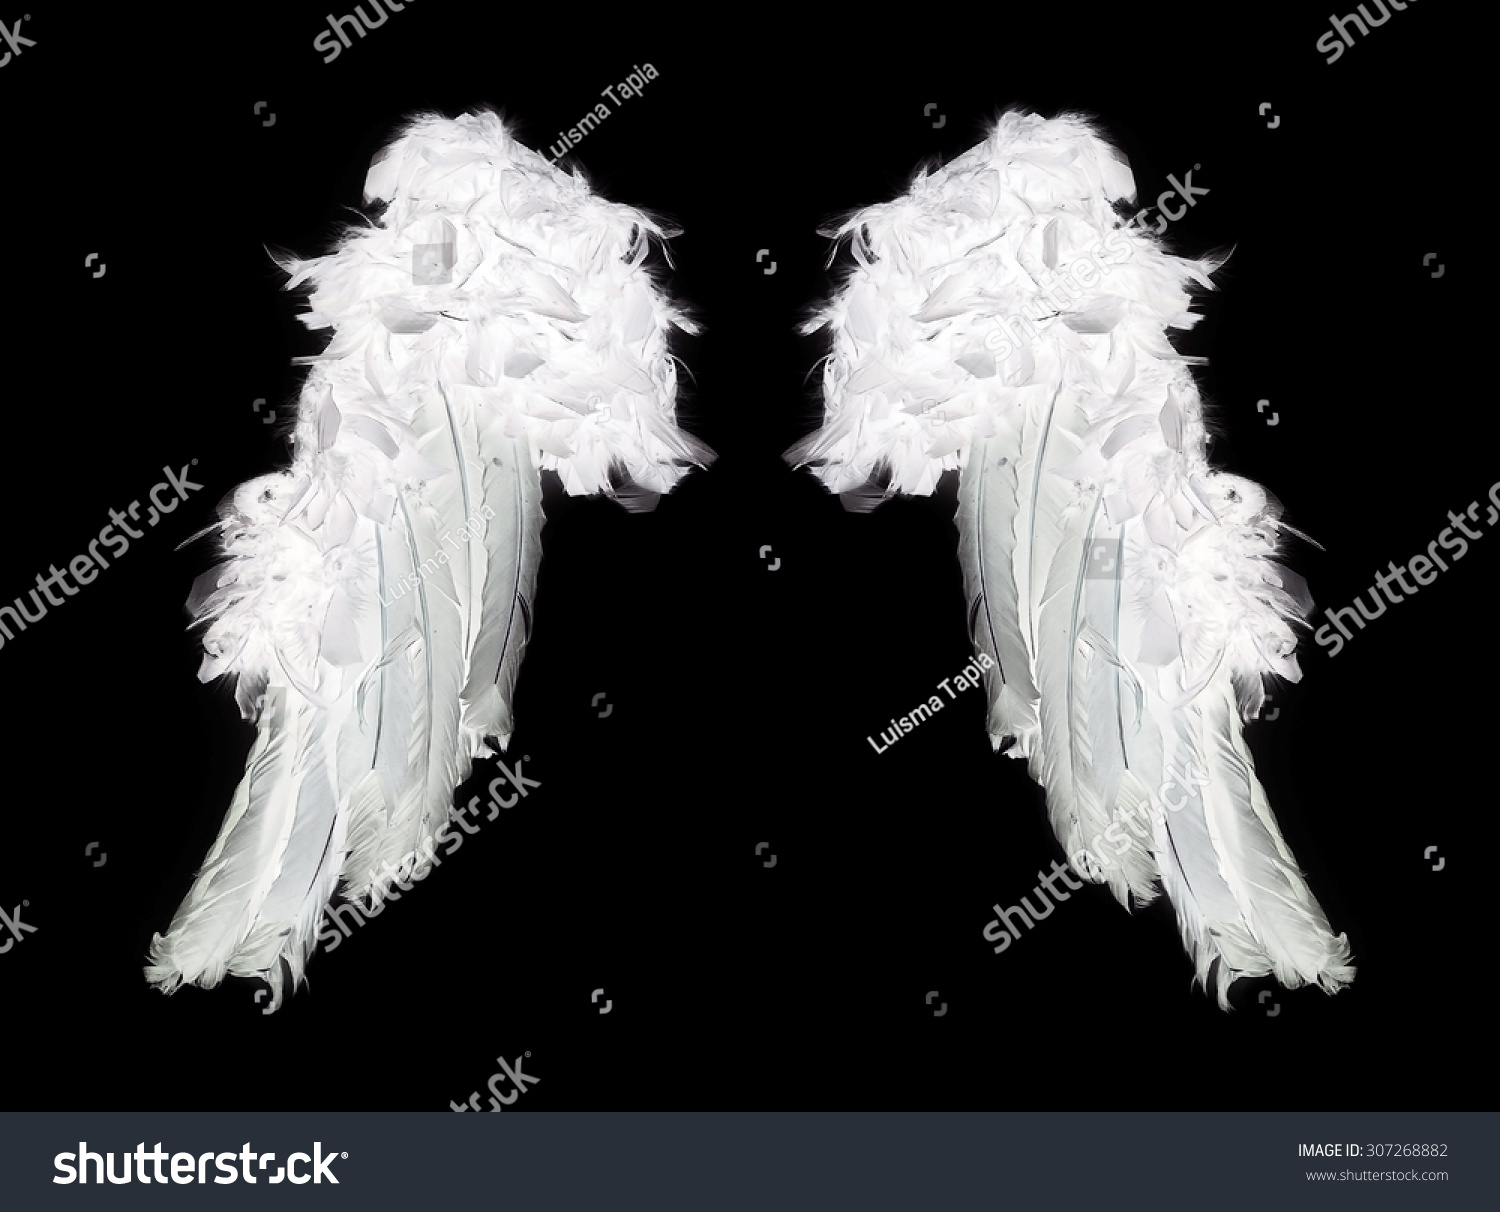 White Angel Wings On Black Background Stock Photo ...